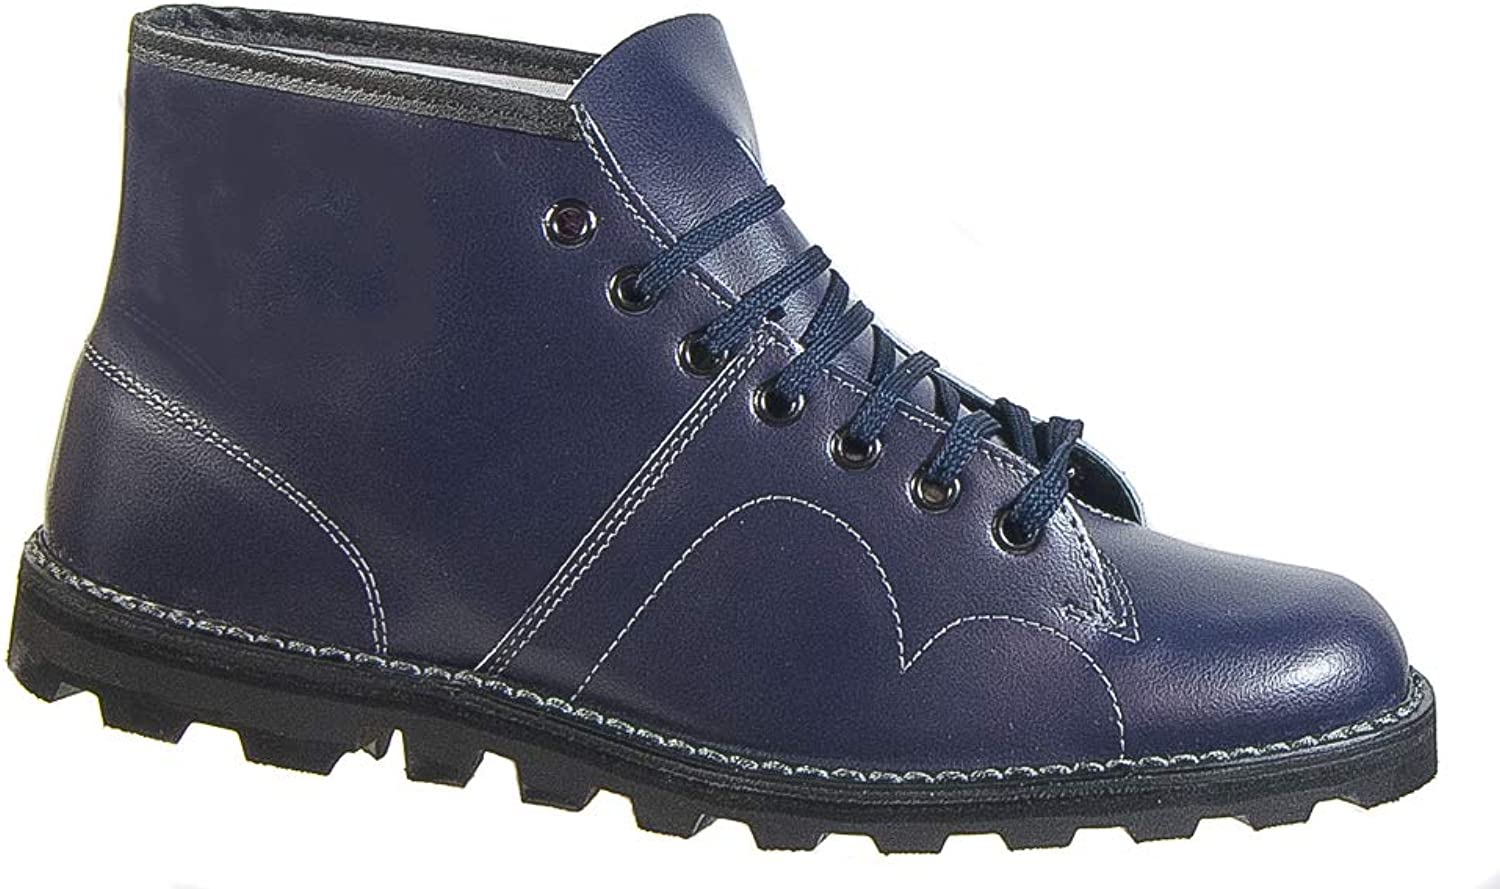 Mens Retro Monkey Boots Navy bluee Leather Laced